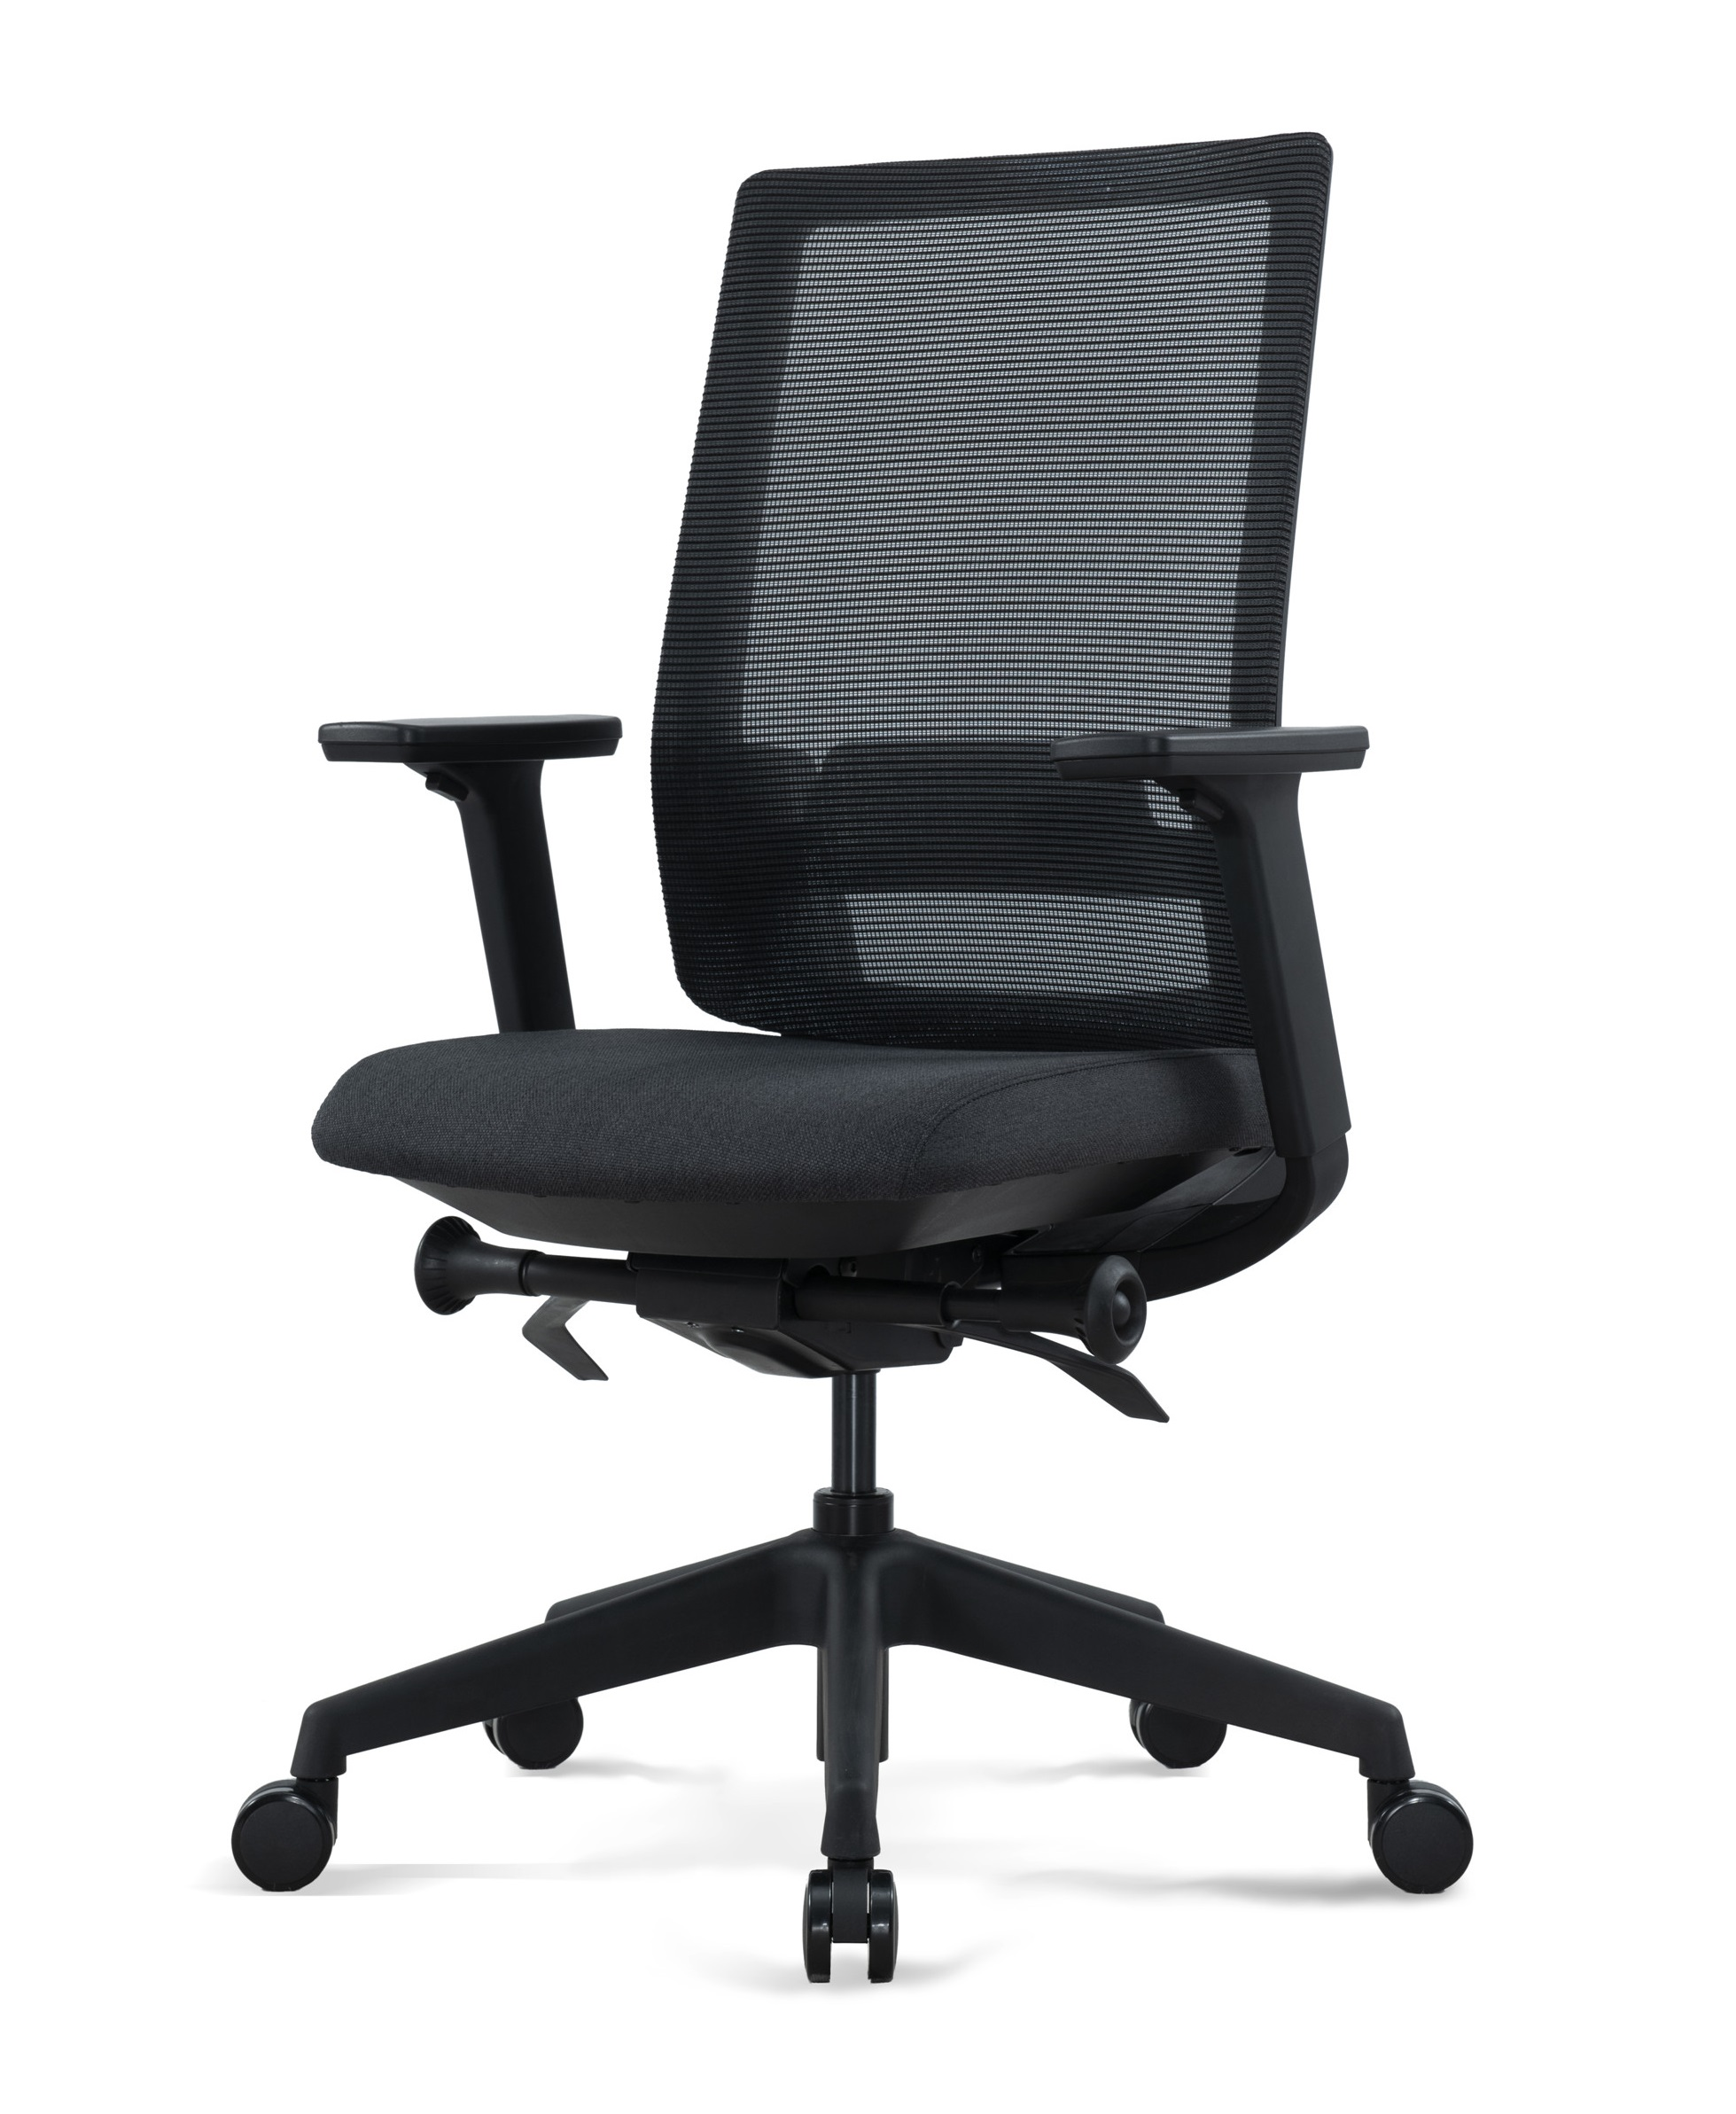 Viking 5 Executive Chair